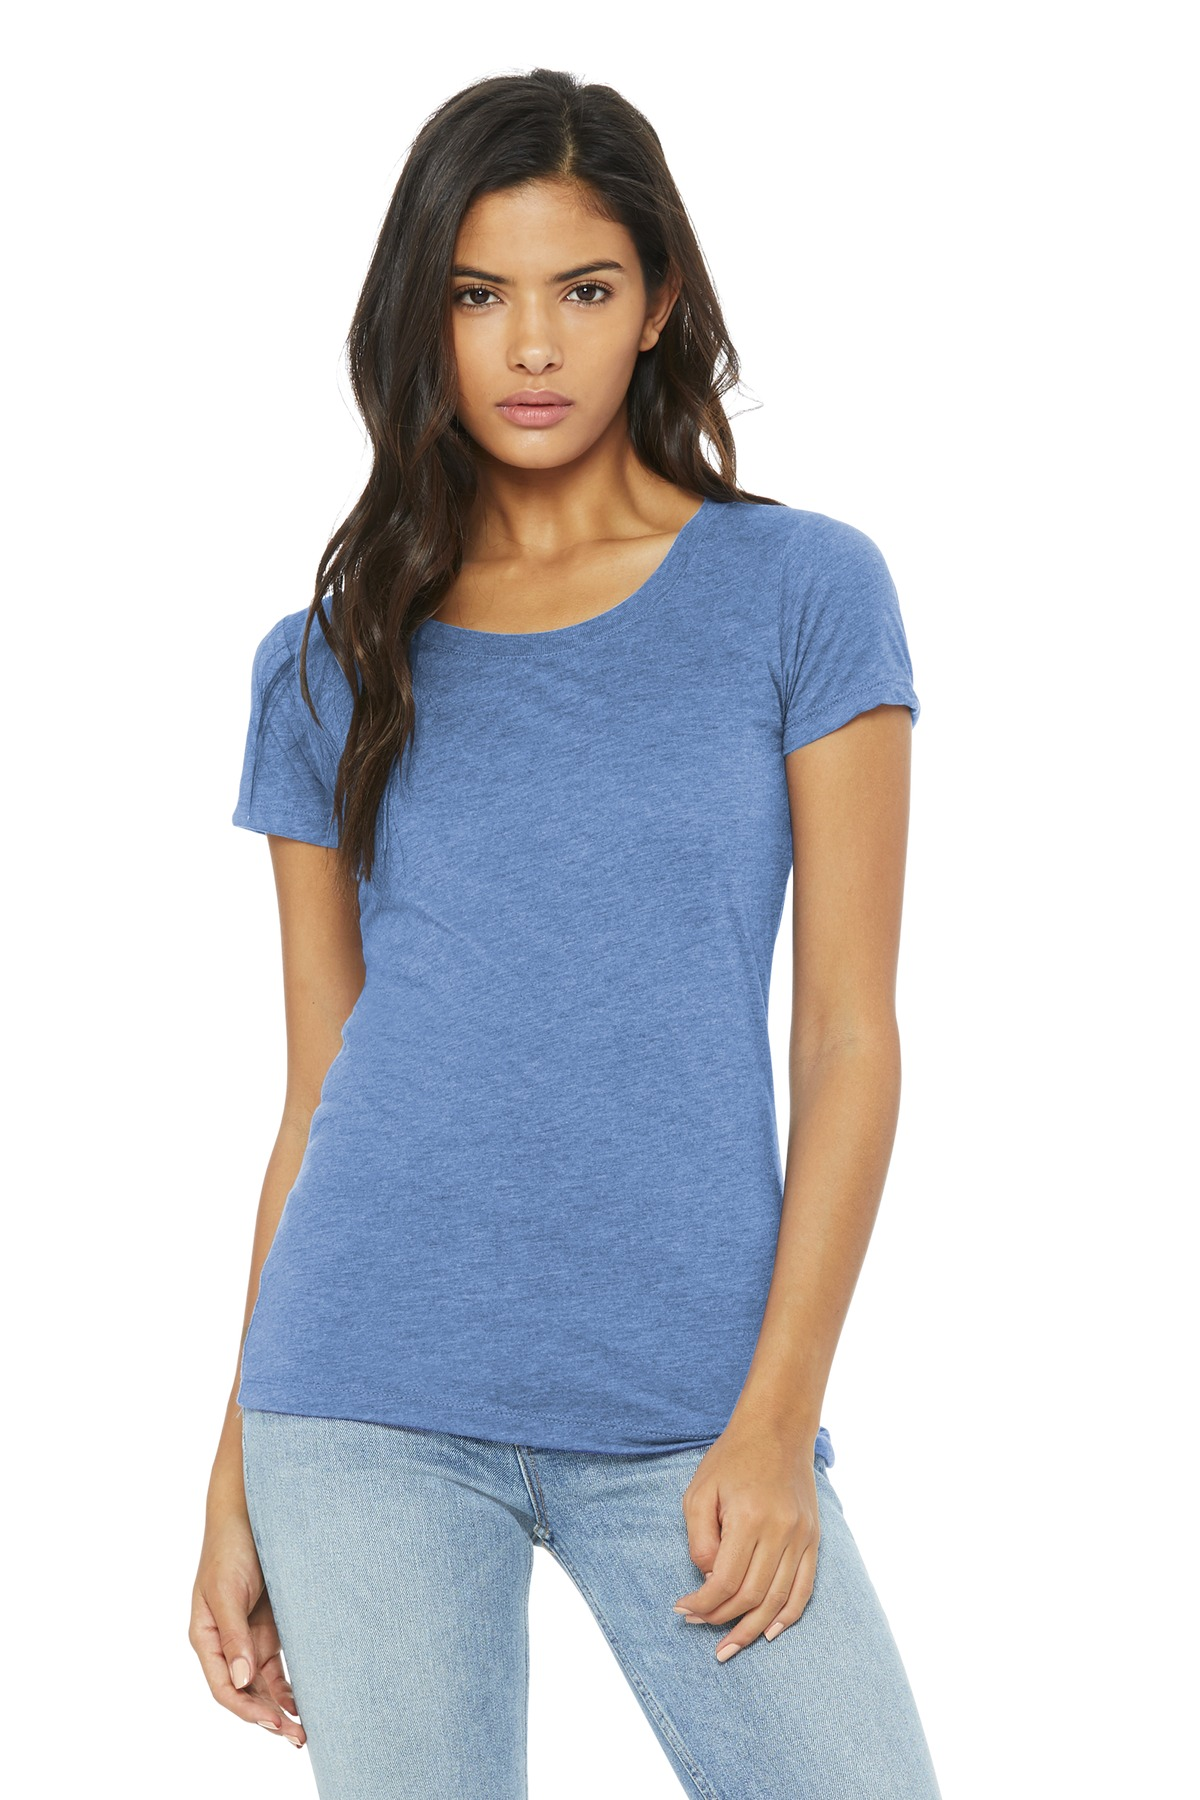 BELLA+CANVAS Women''s Triblend Short Sleeve Tee. BC8413